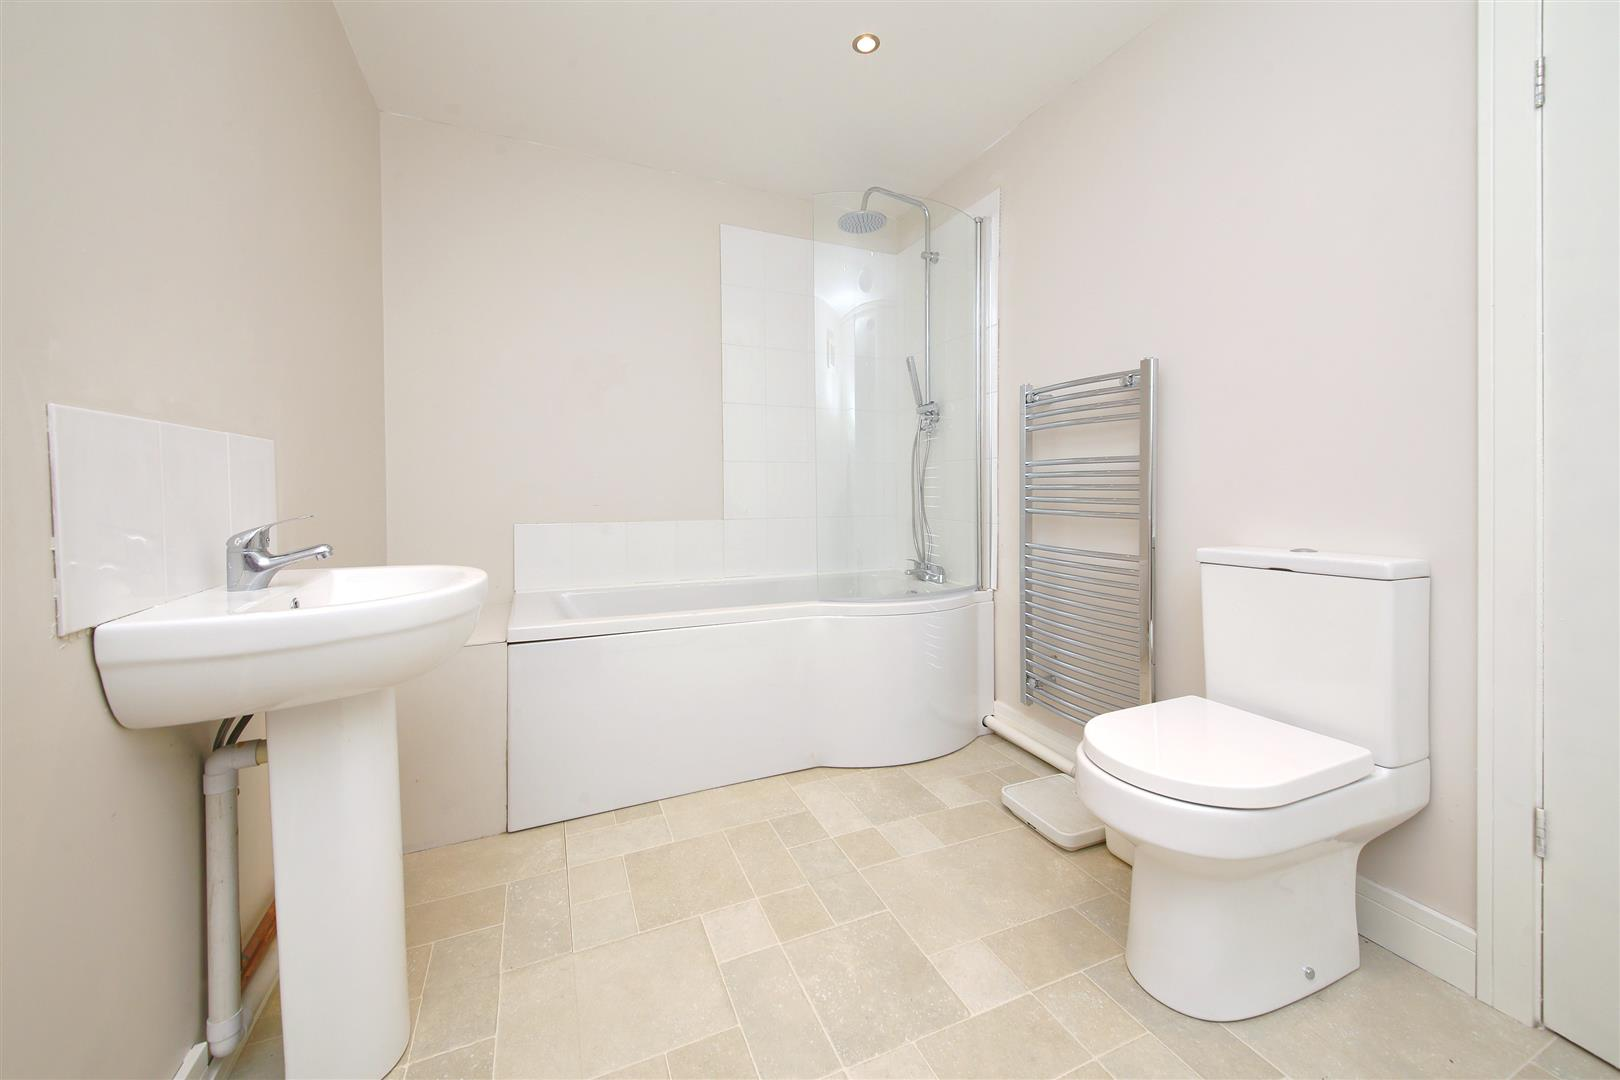 3 bed for sale in Station Road, Bricket Wood - (Property Image 11)